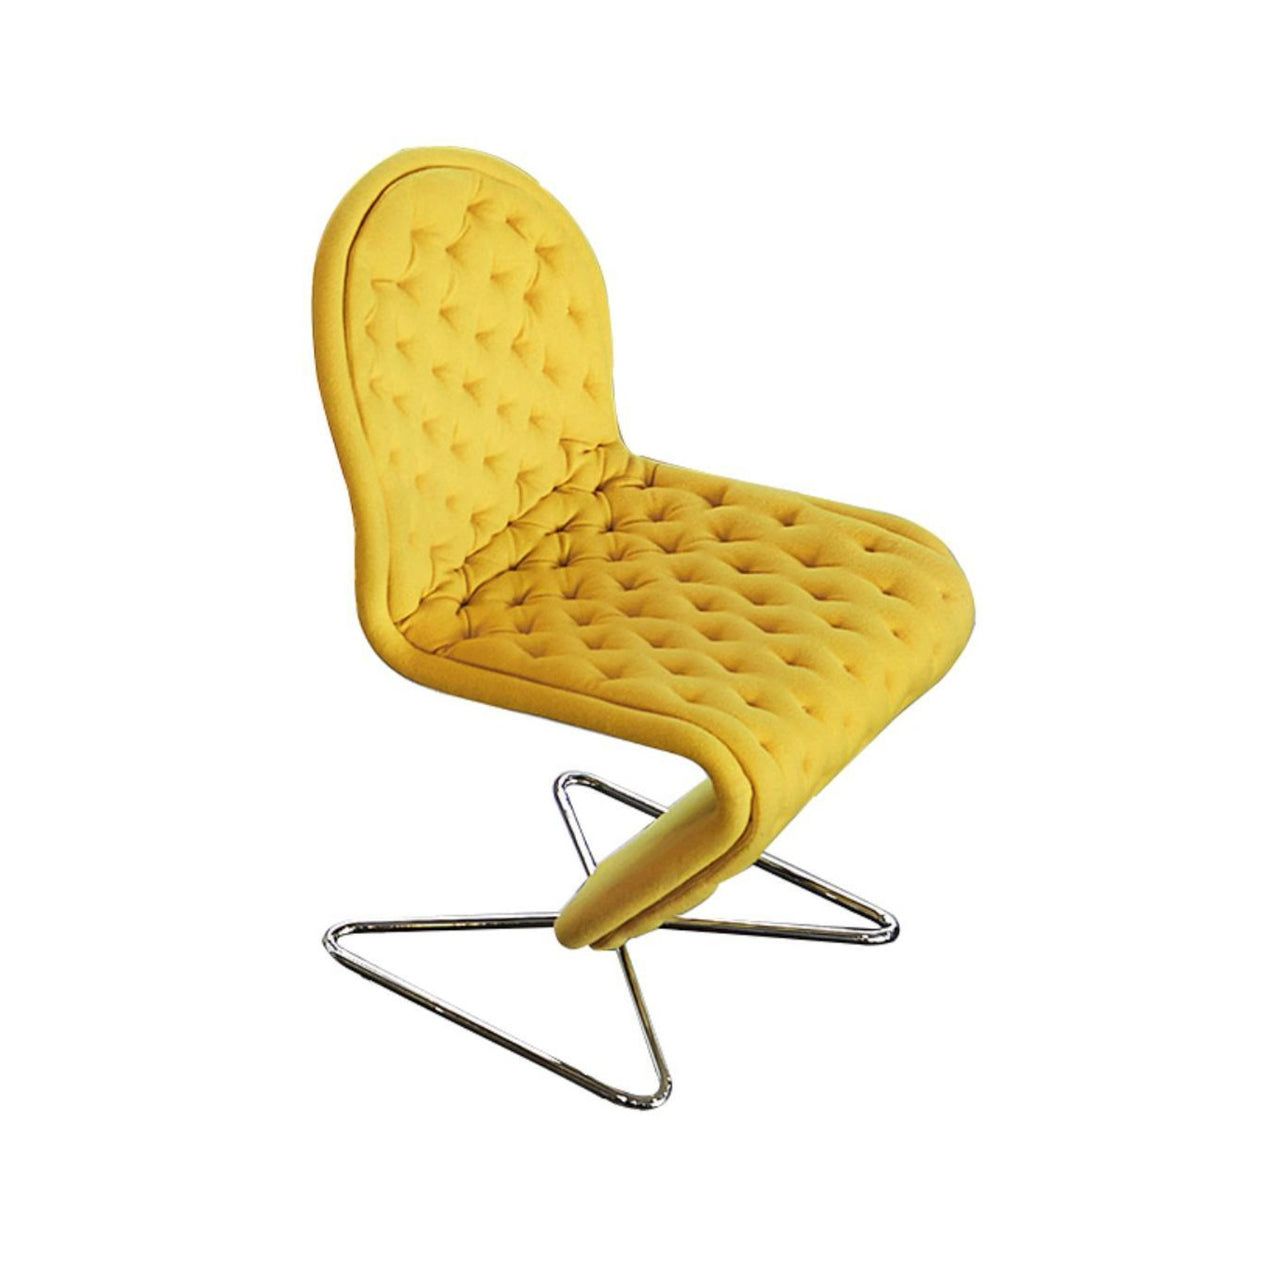 System 1-2-3 Dining Chair: Deluxe + Butterfly